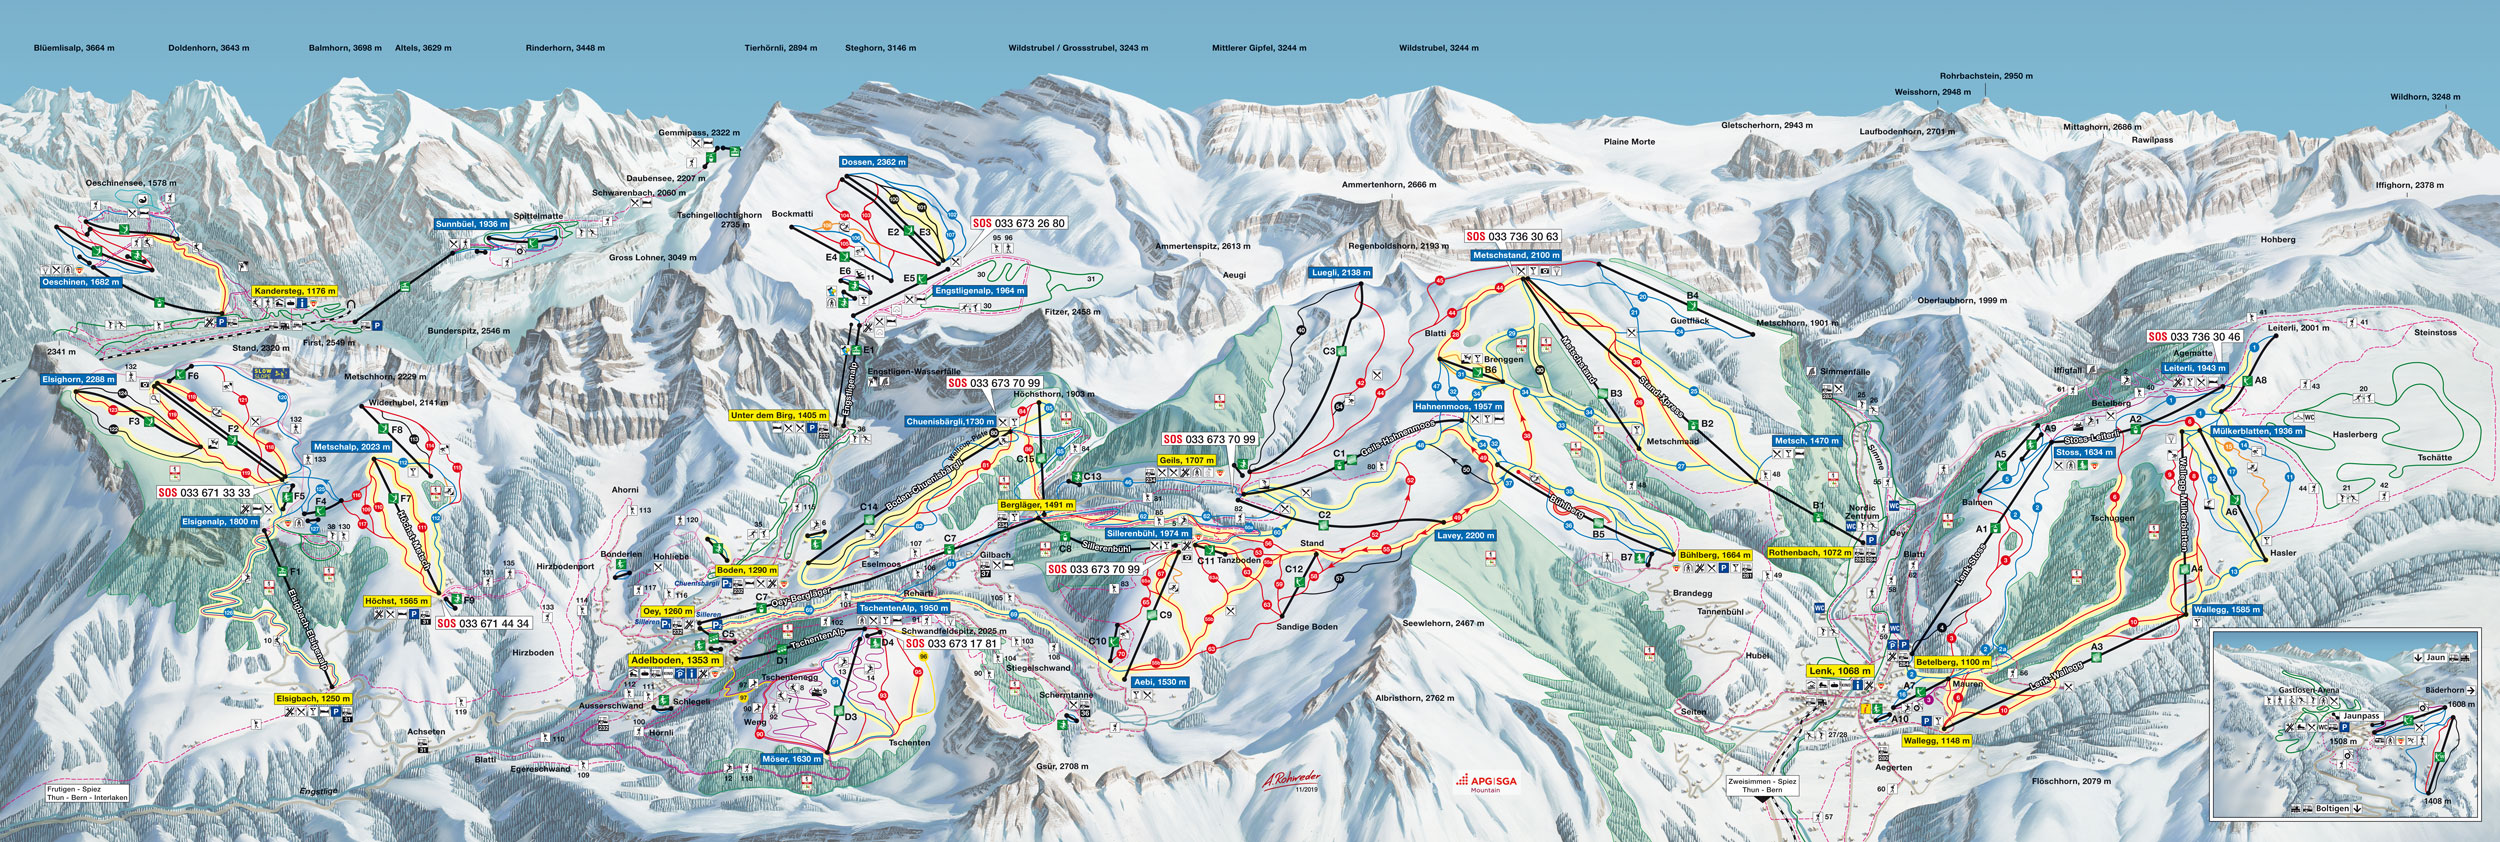 Adelboden Lenk Winter Pistenplan Ski Map